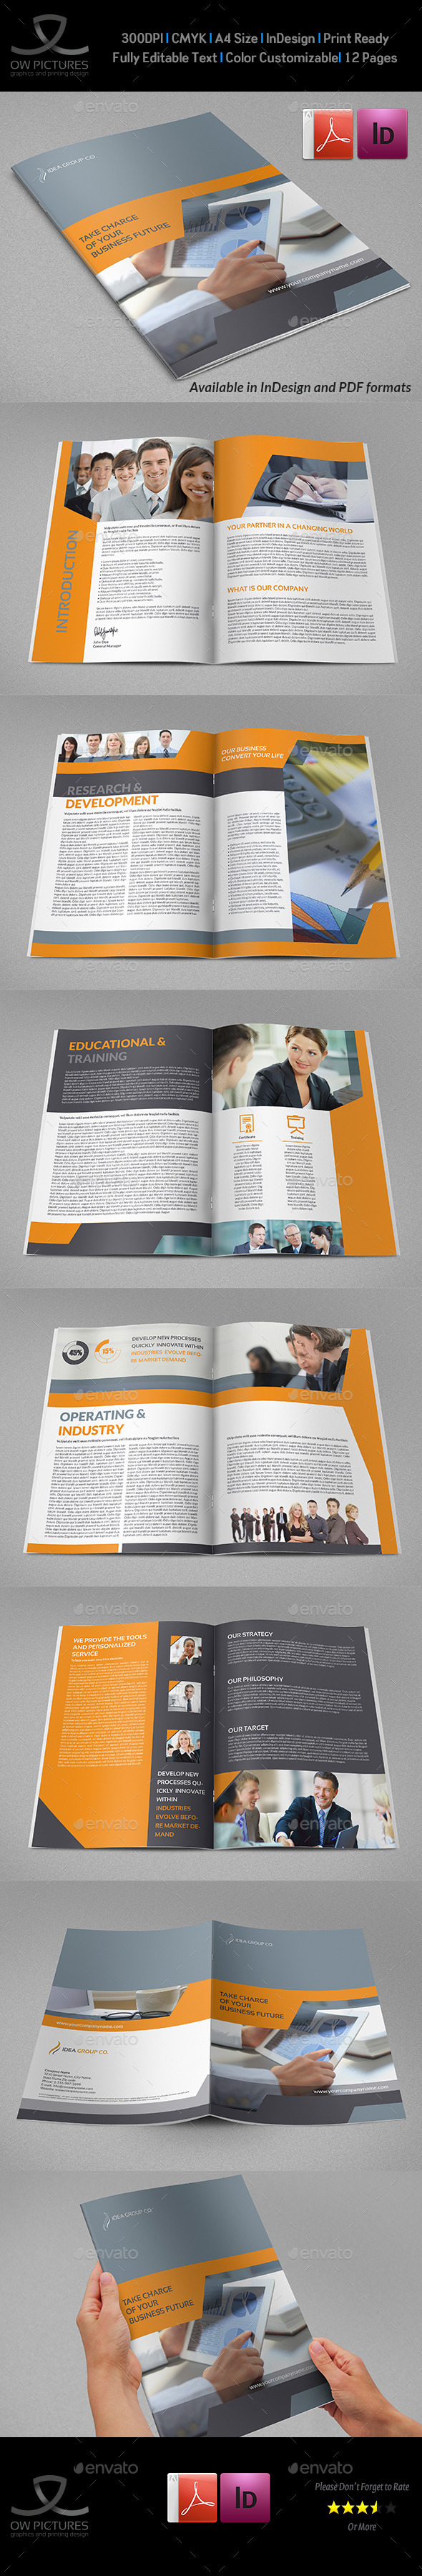 GraphicRiver Corporate Brochure Template Vol.39 12 Pages 9158440